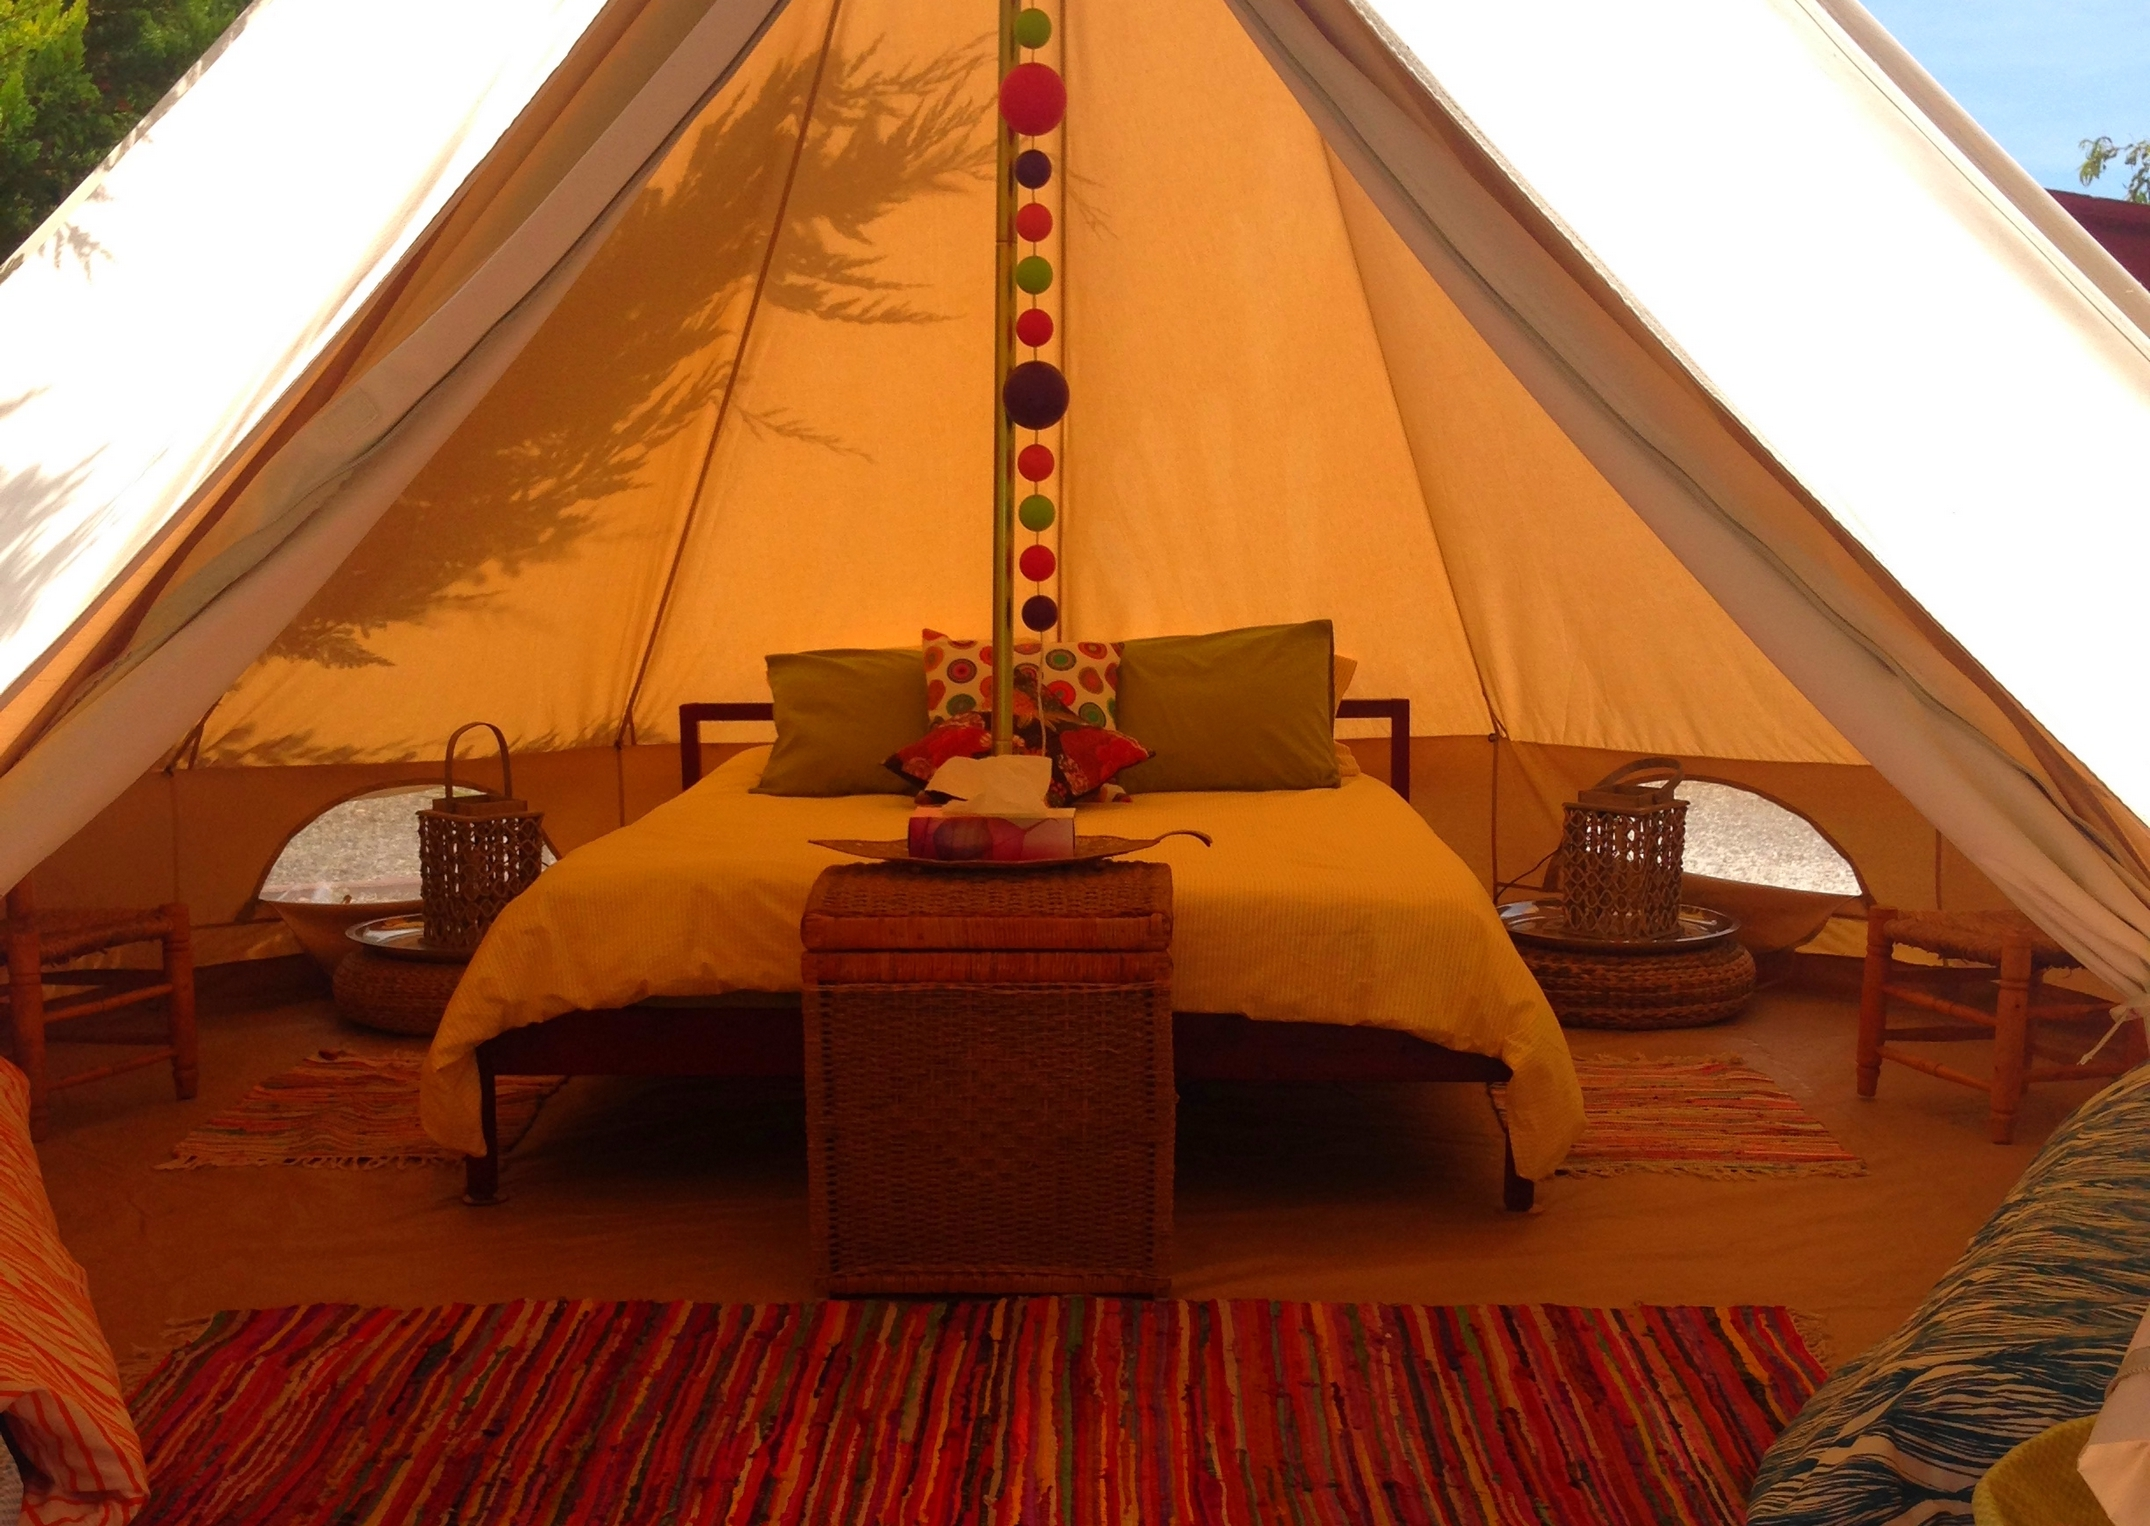 & Bell Tent Camping in Malaga Spain